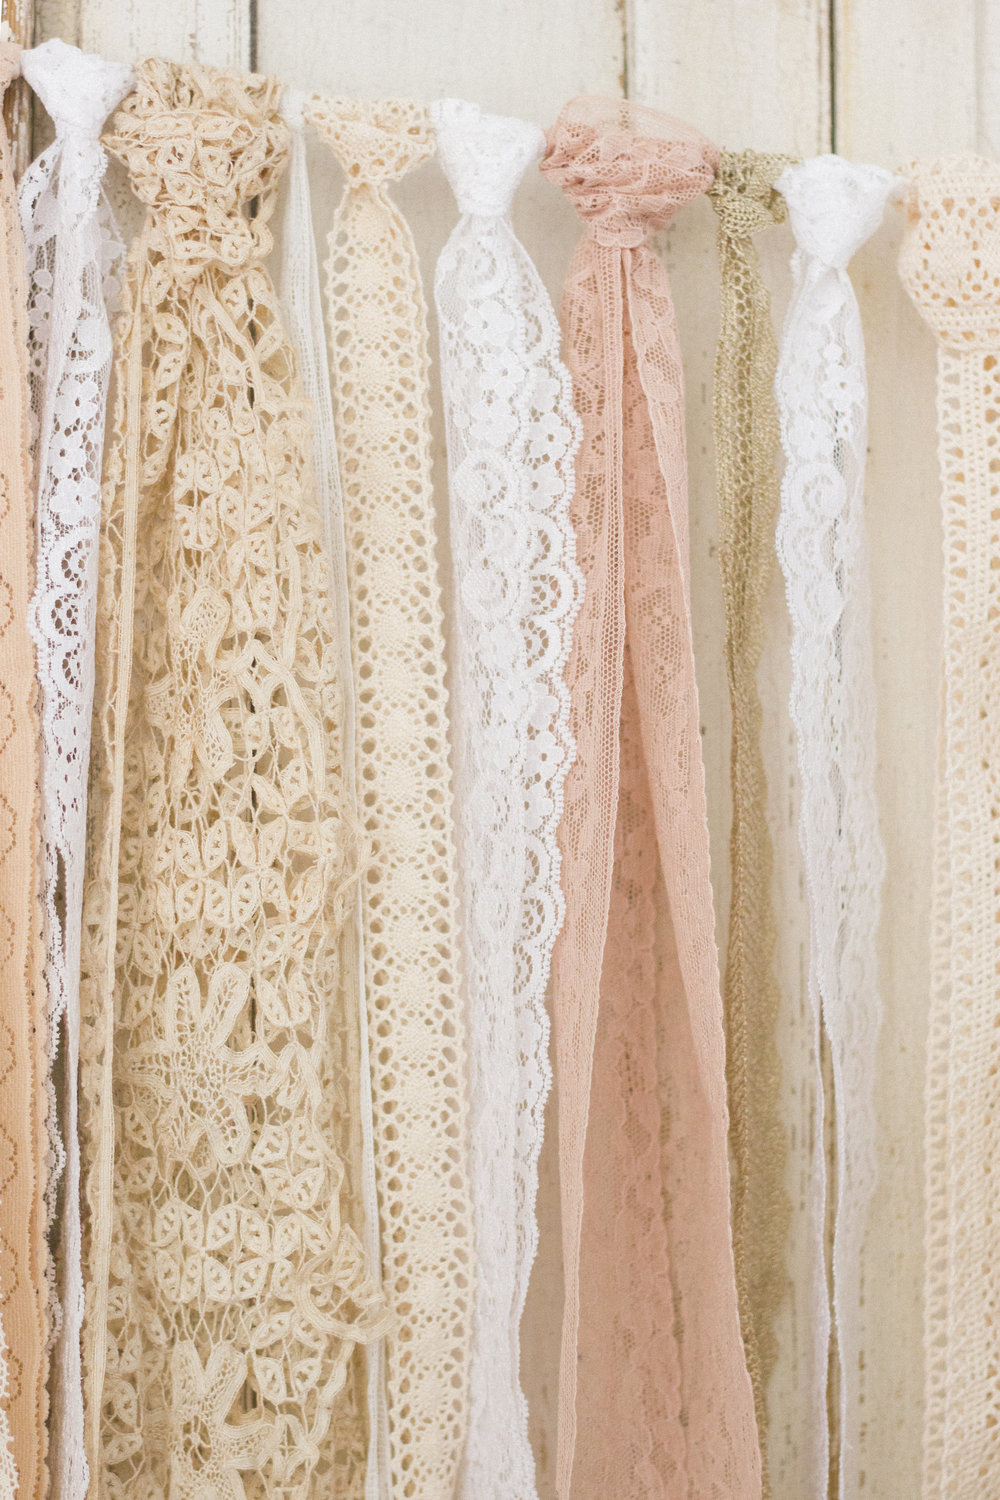 More detail of my pretty lace hanging.